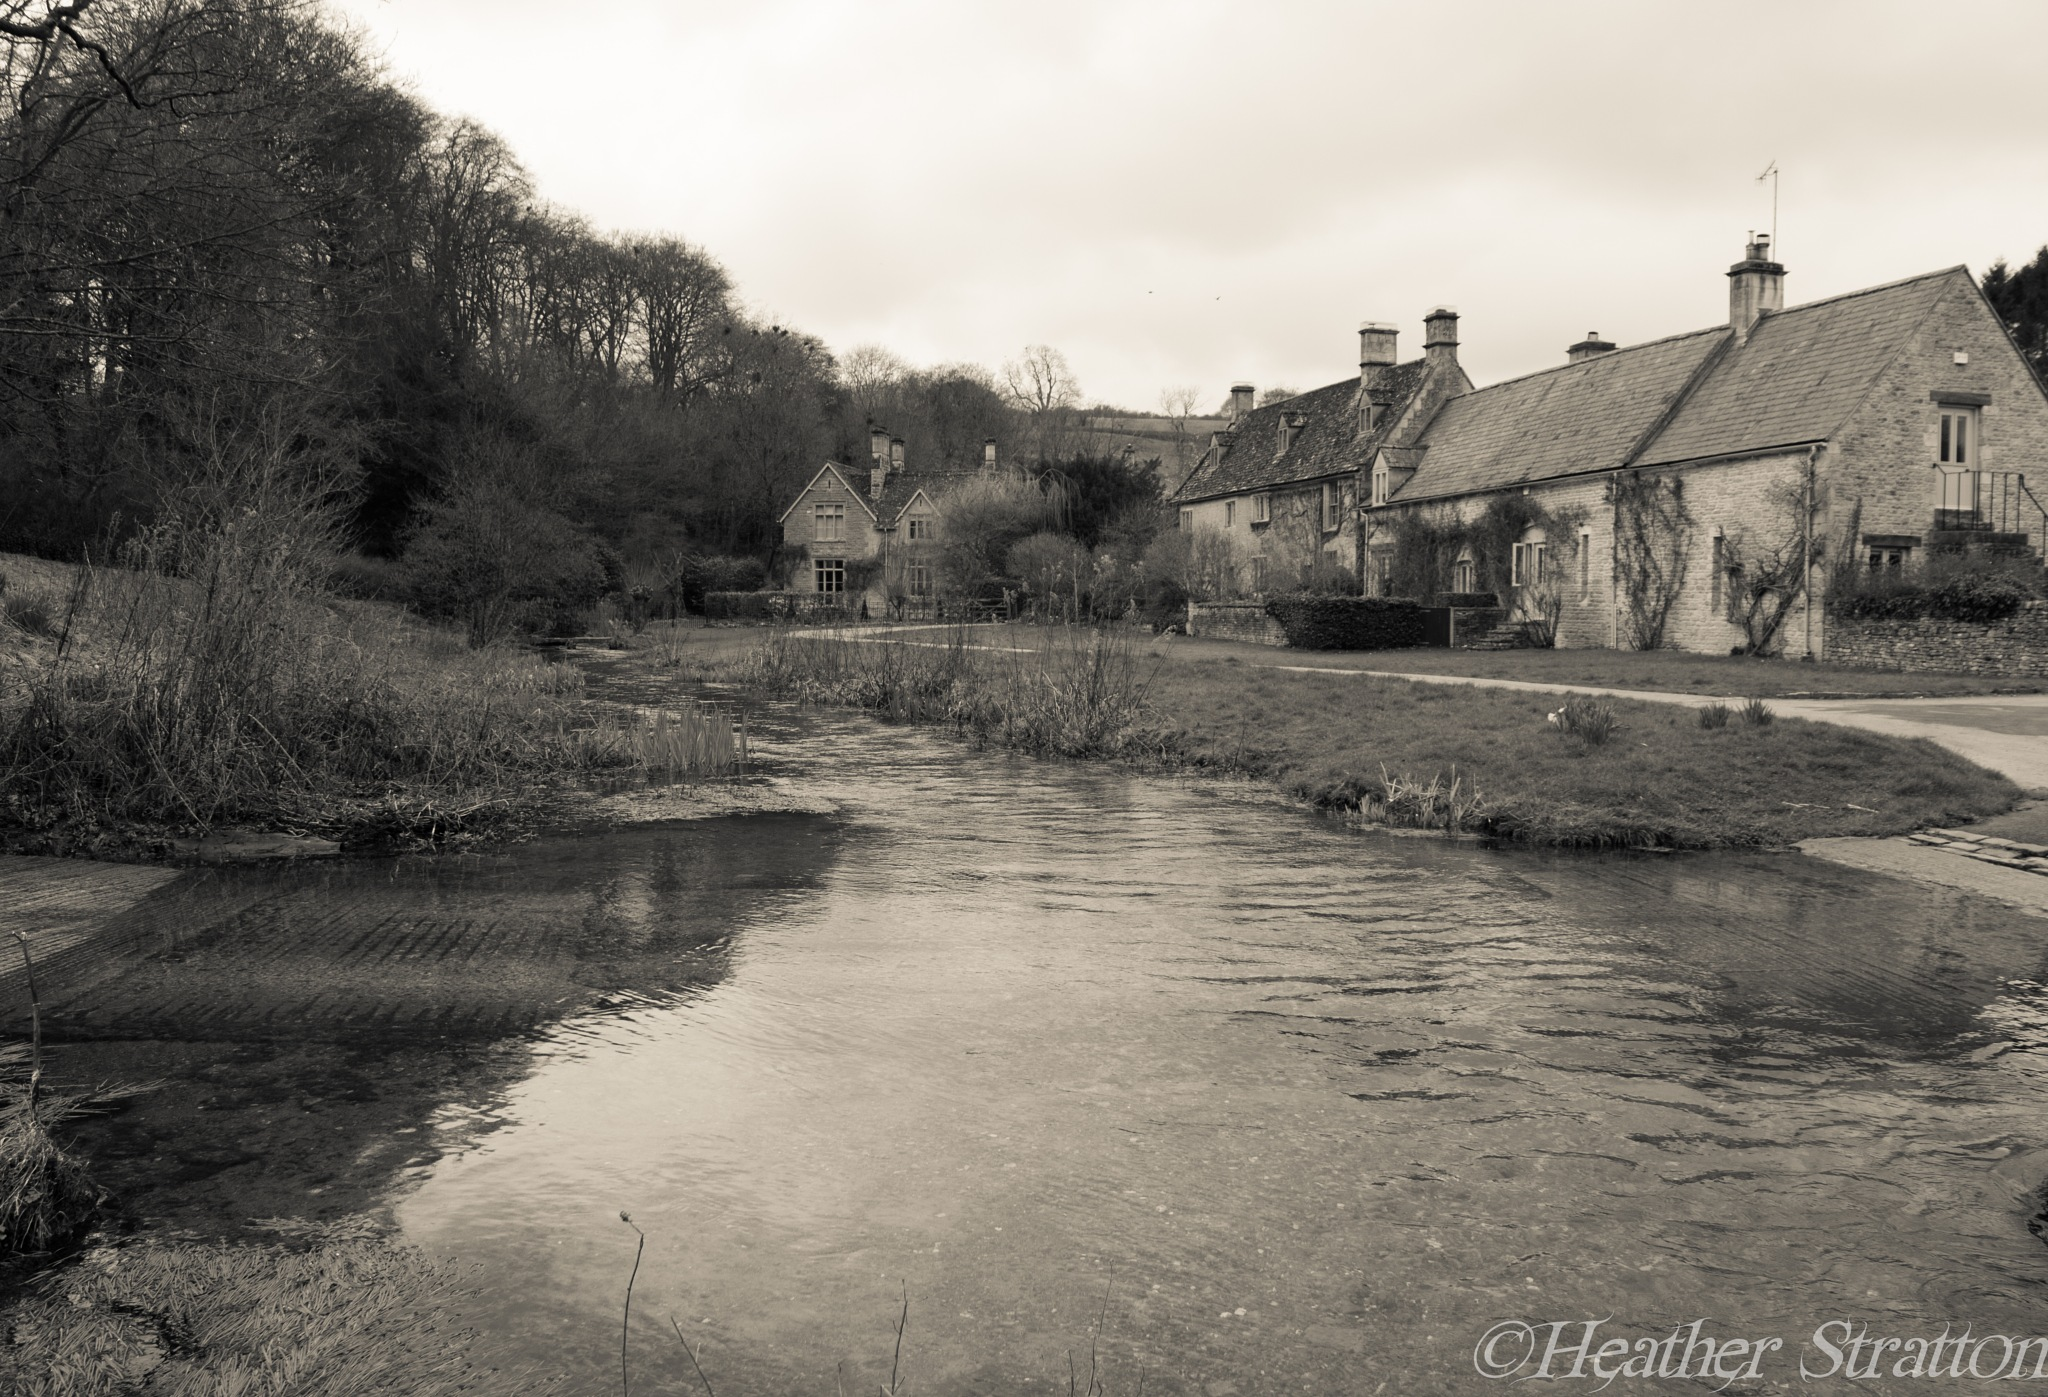 Upper Slaughter cottages and stream by Heather Stratton